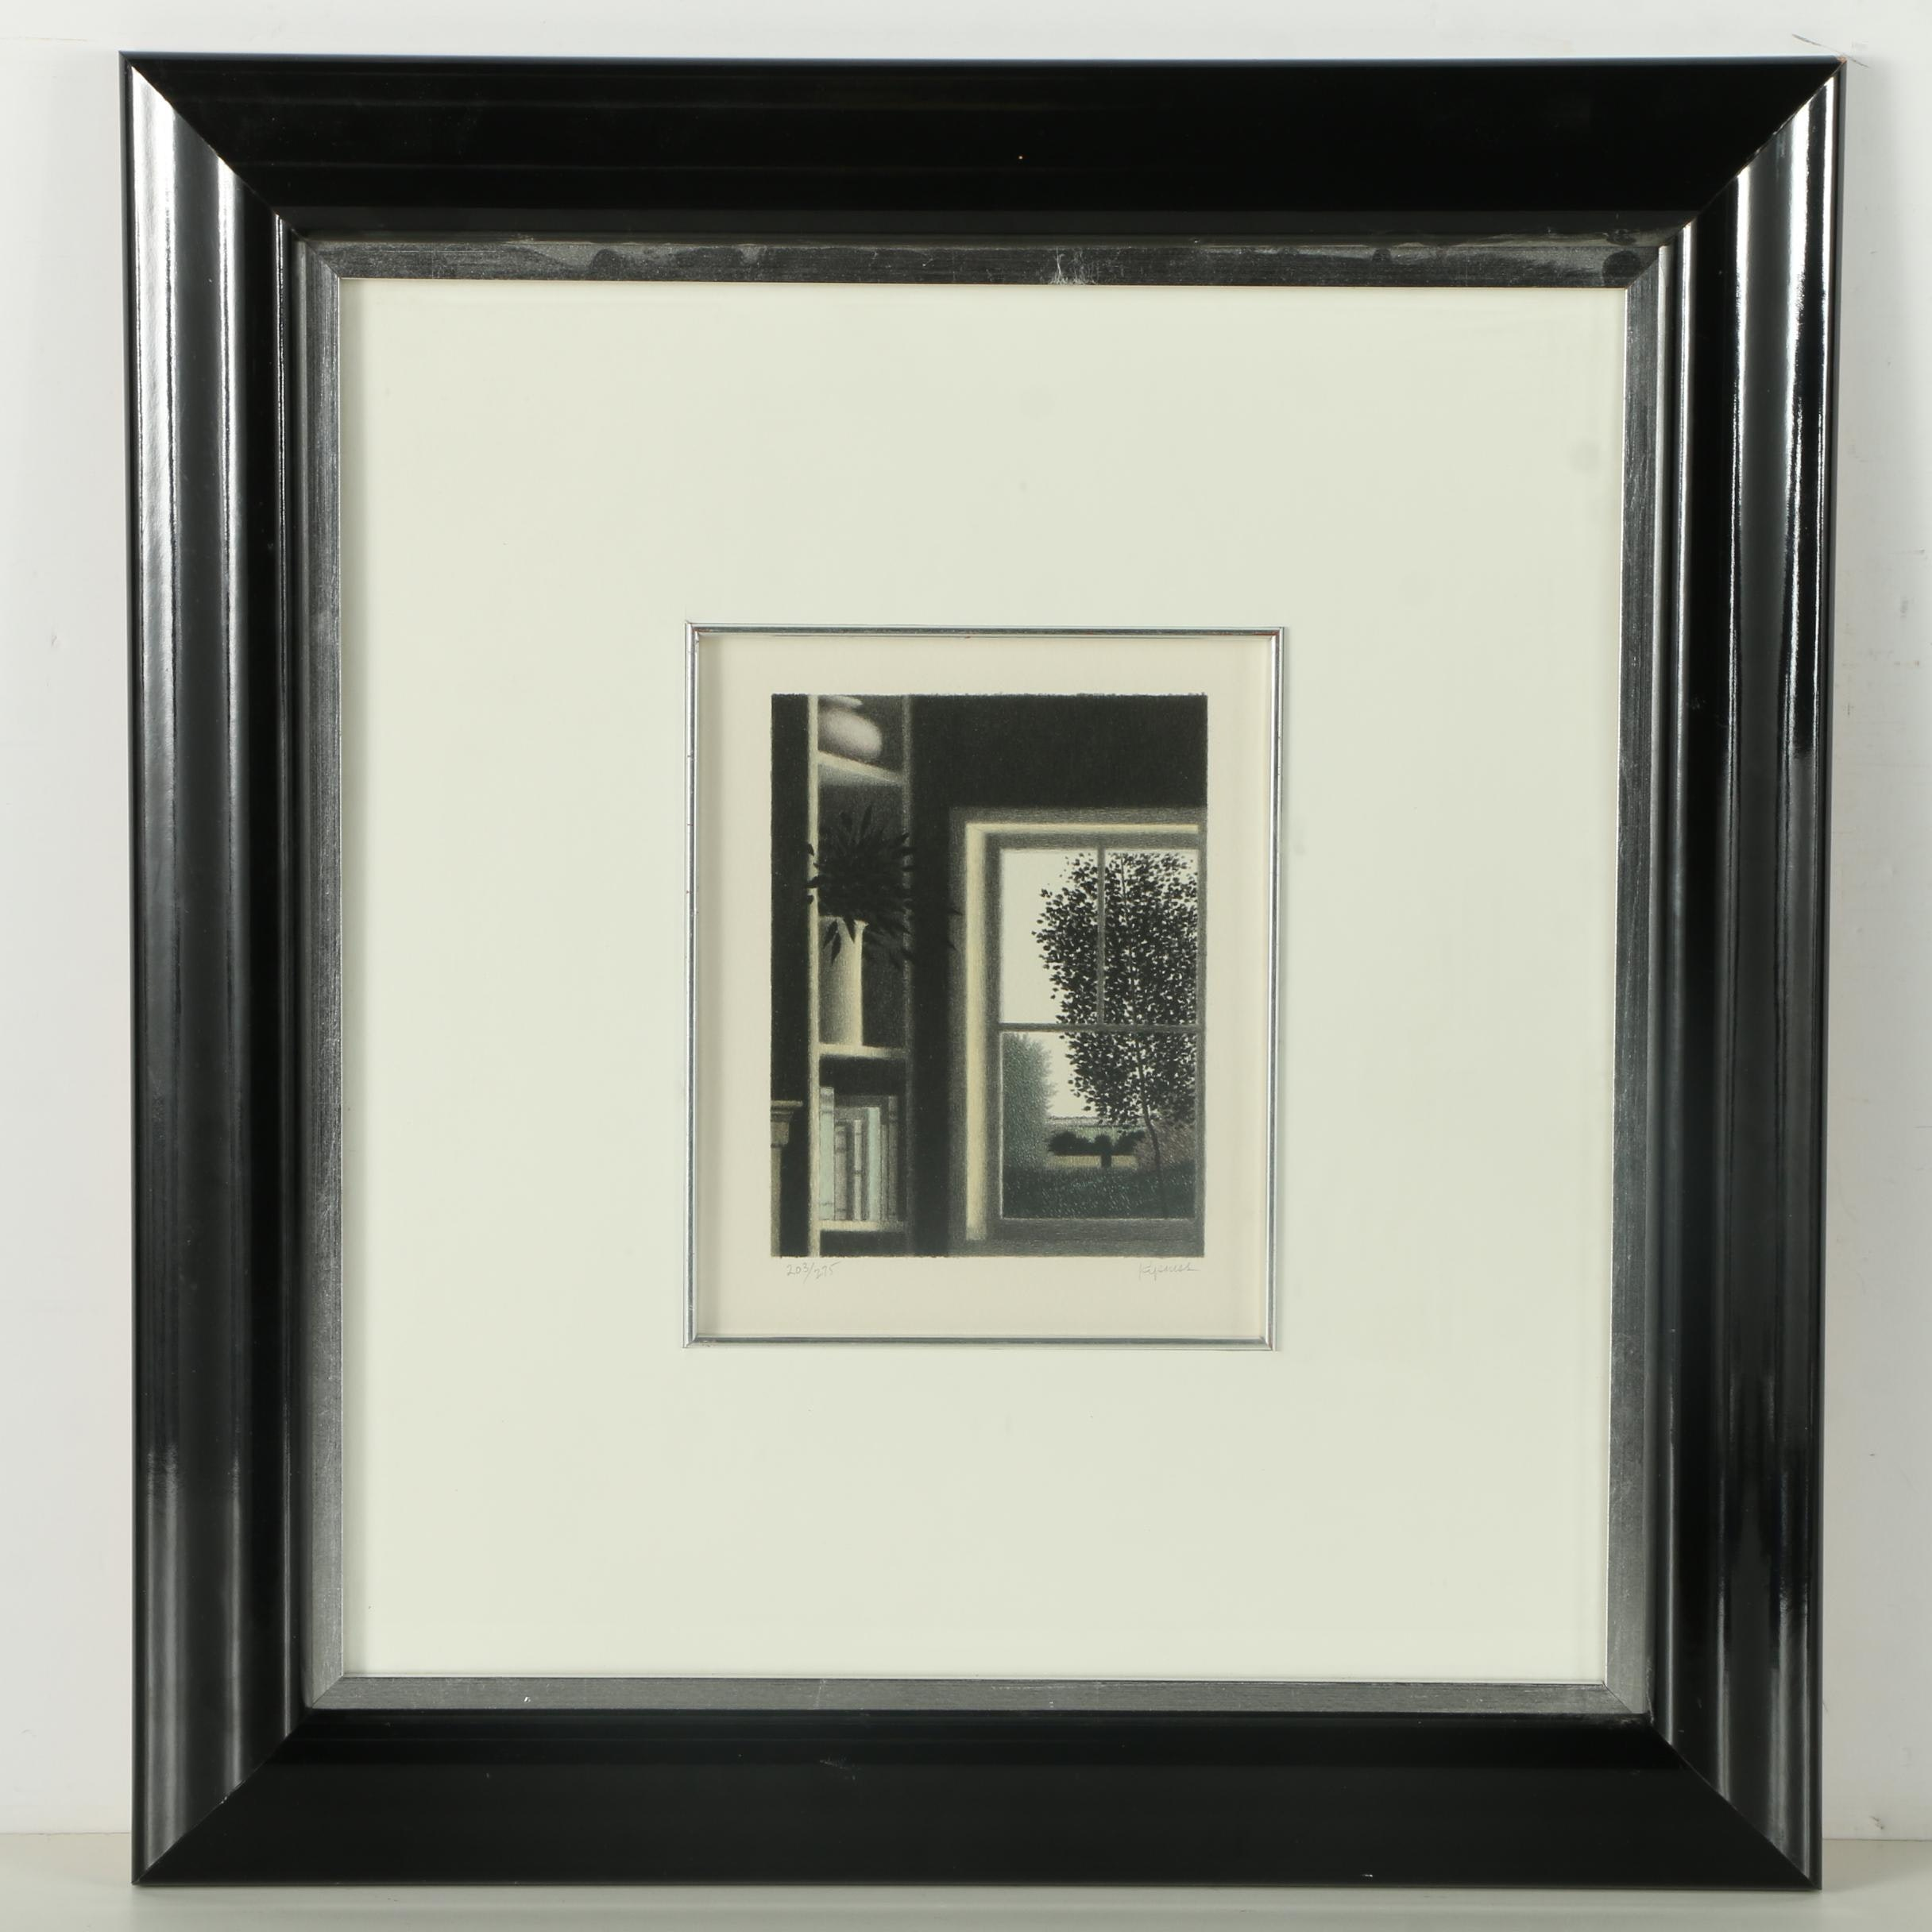 Robert Kipniss Limited Edition Lithograph of Window View